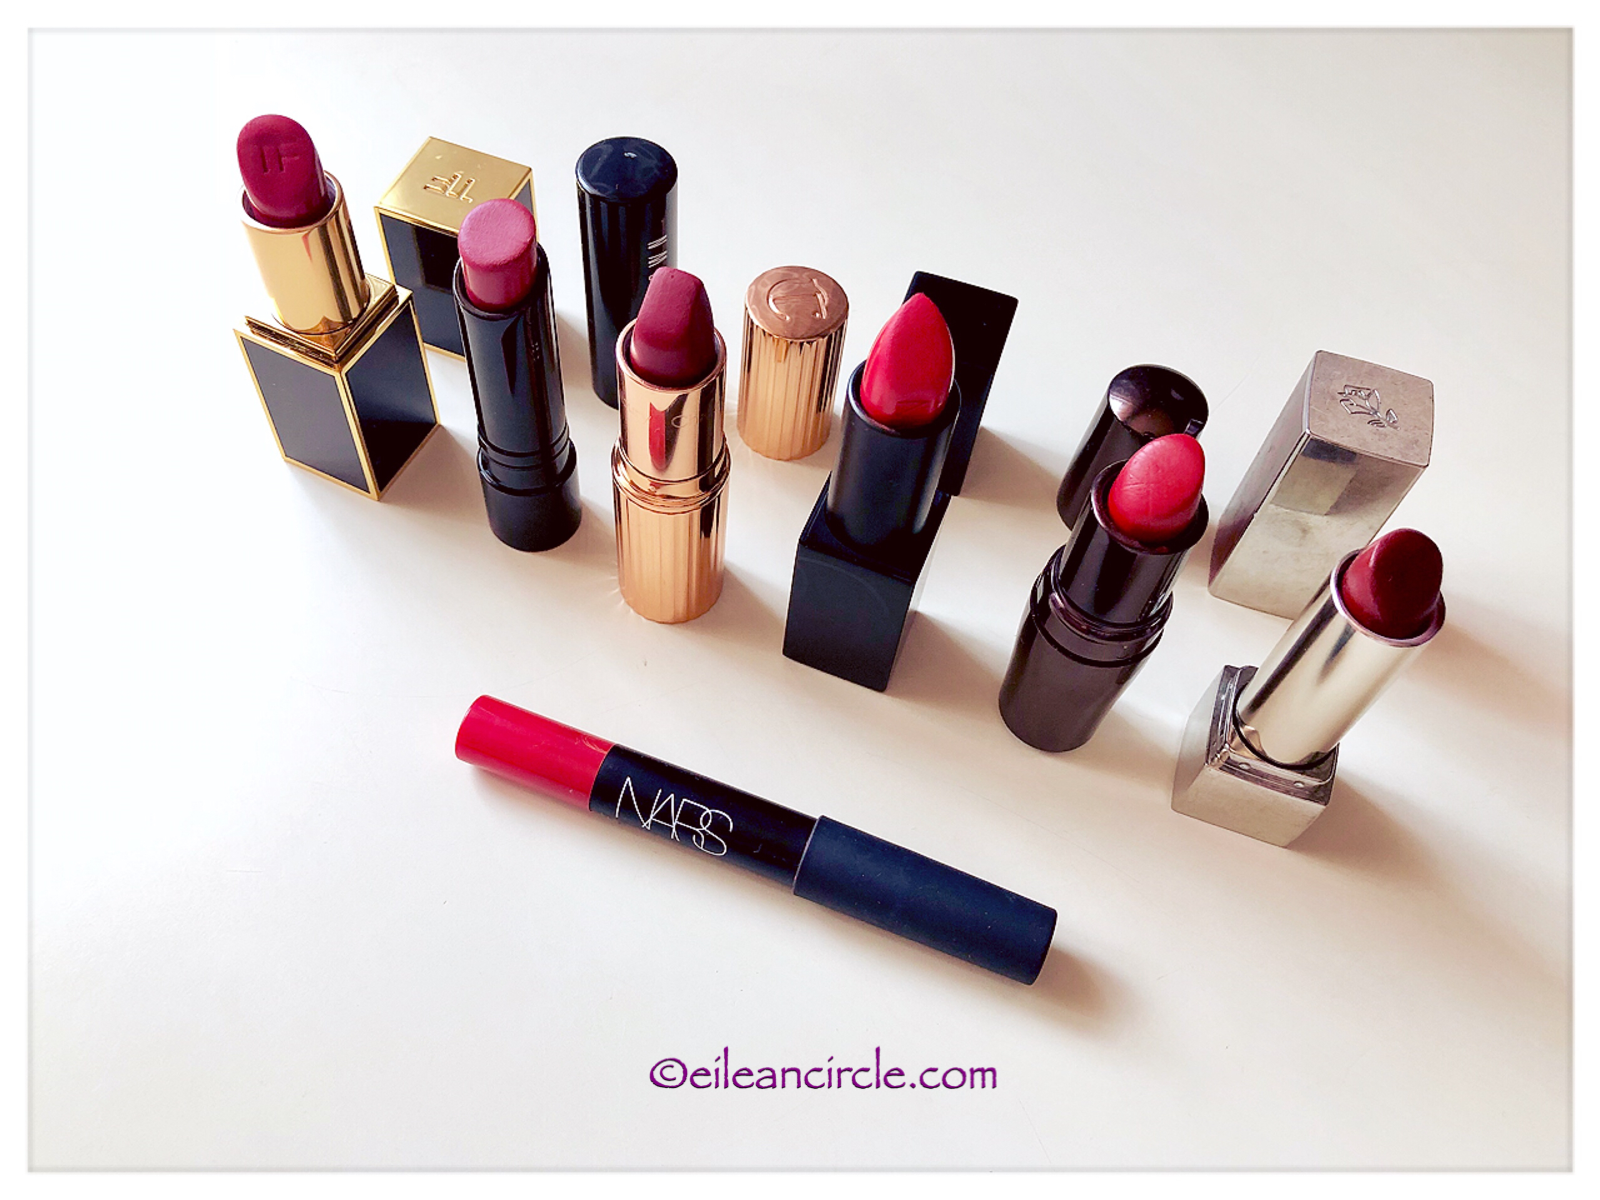 Red Lipstick, Lipstick Collection, Nars, Tom Ford, Charlotte Tilbury, Lâncome